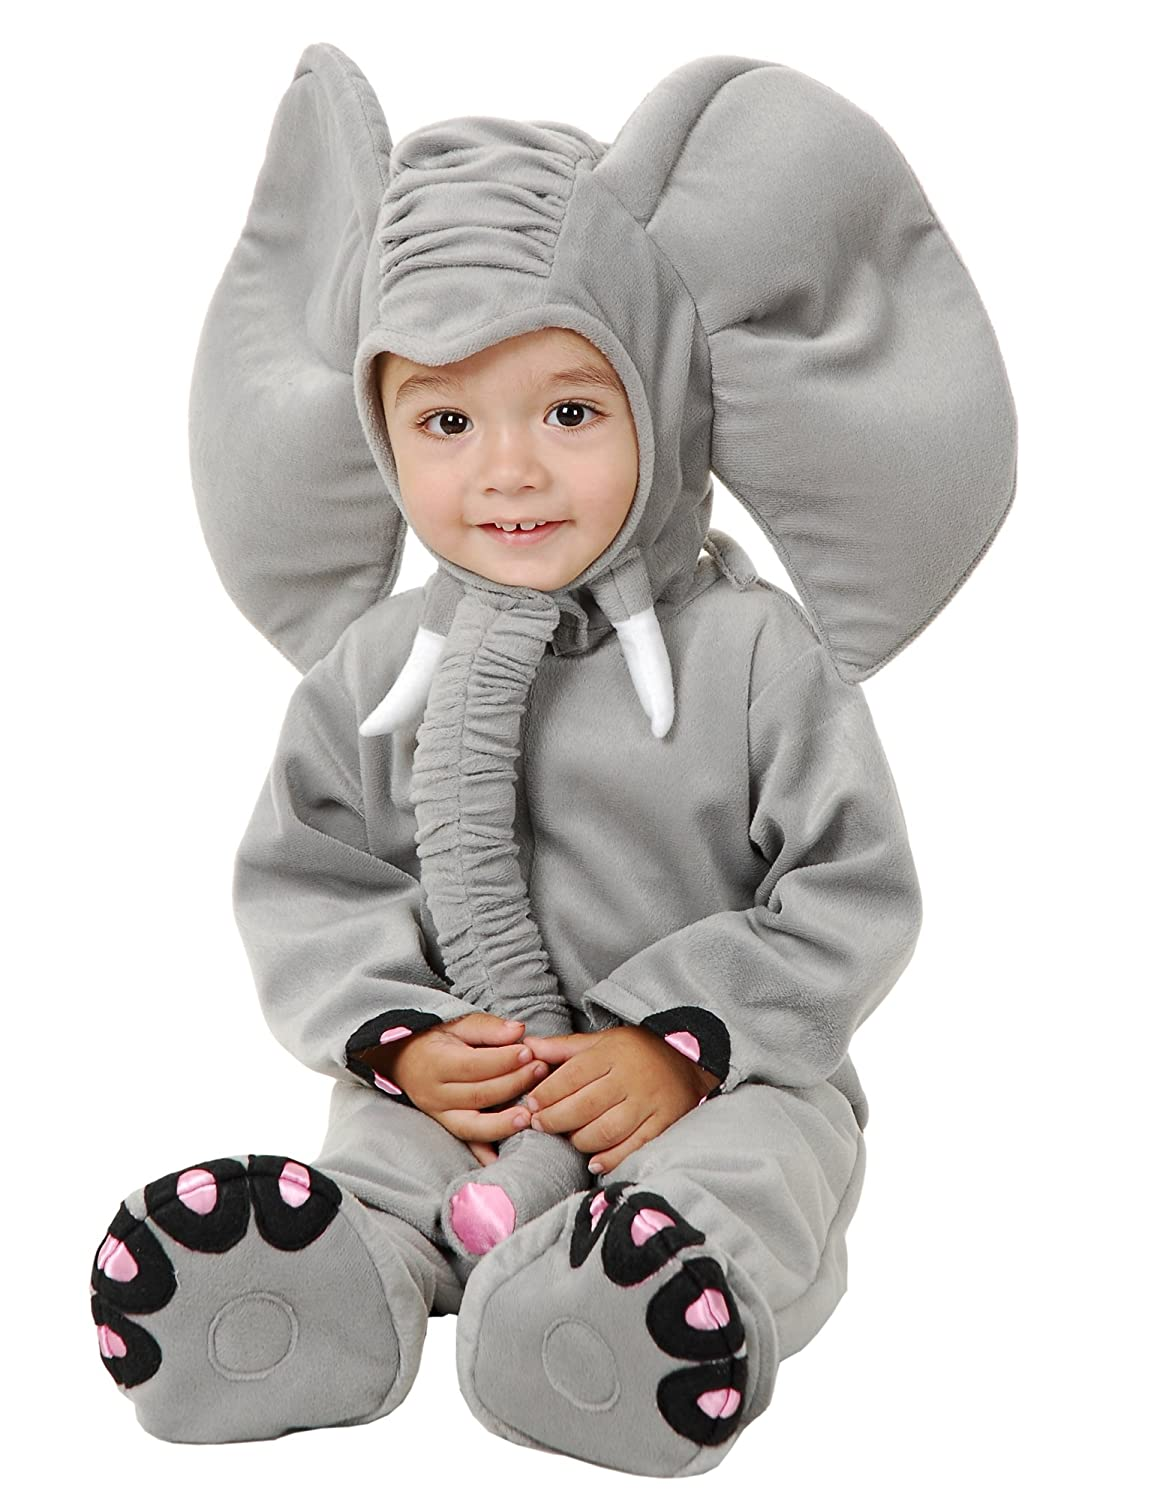 Charades Baby Little Elephant Costume